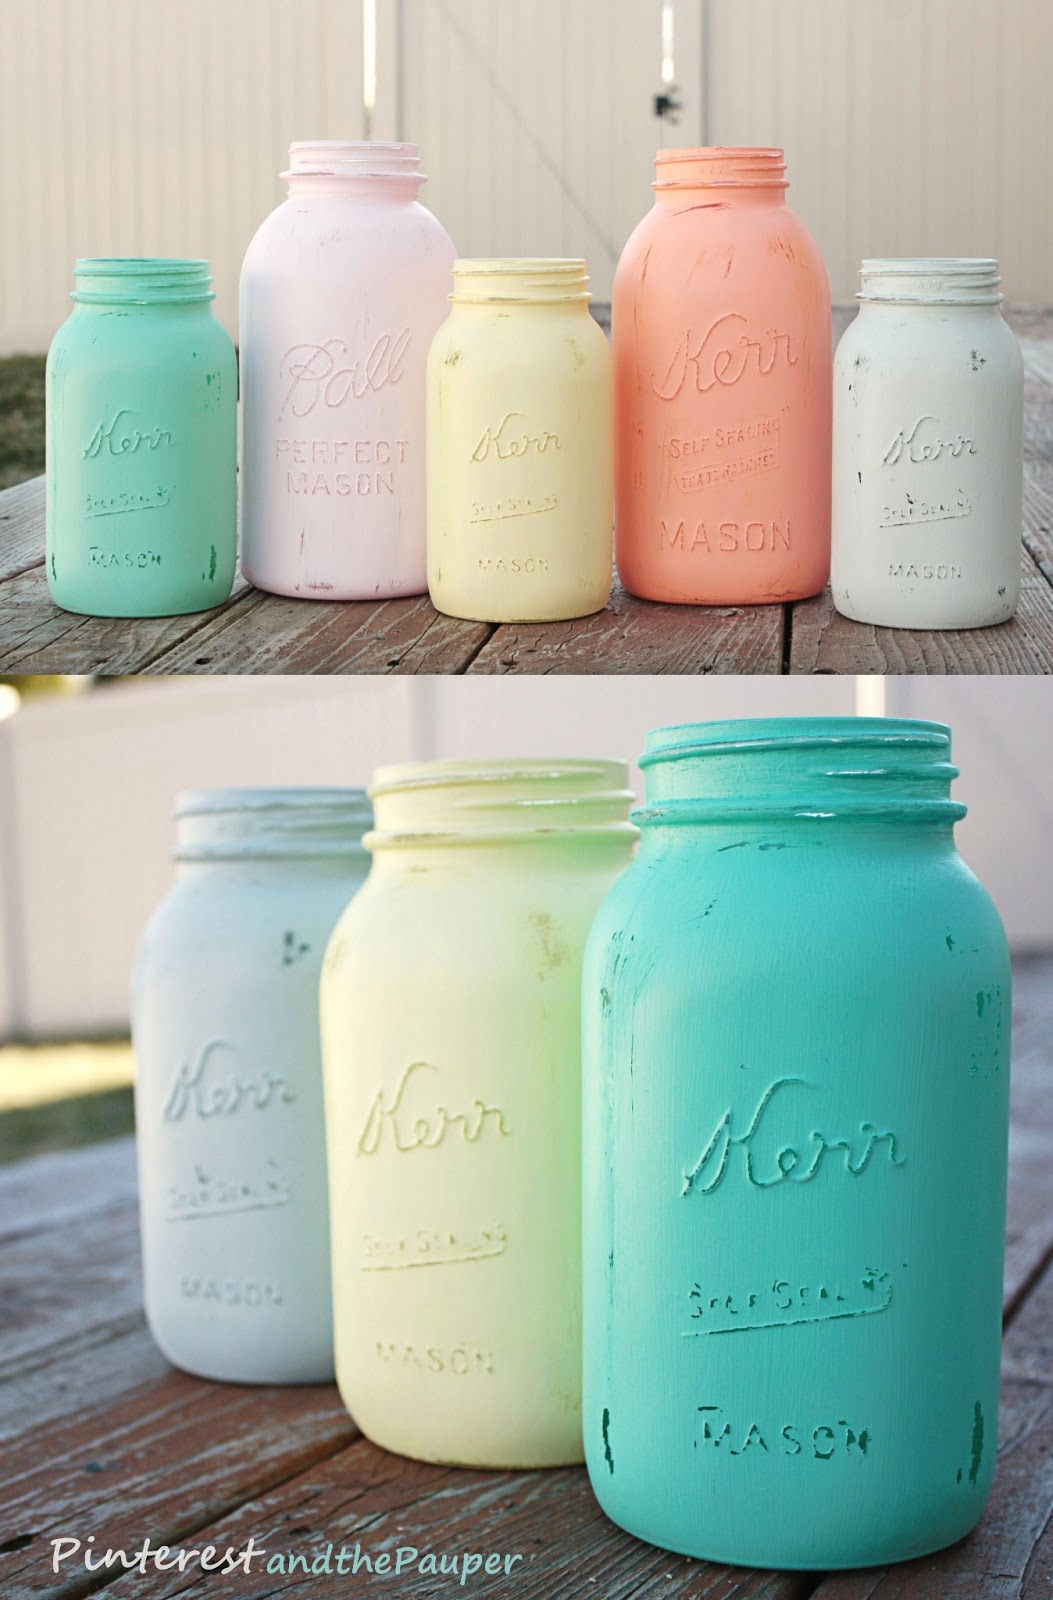 Pinterest And The Pauper Diy Painted Mason Jars